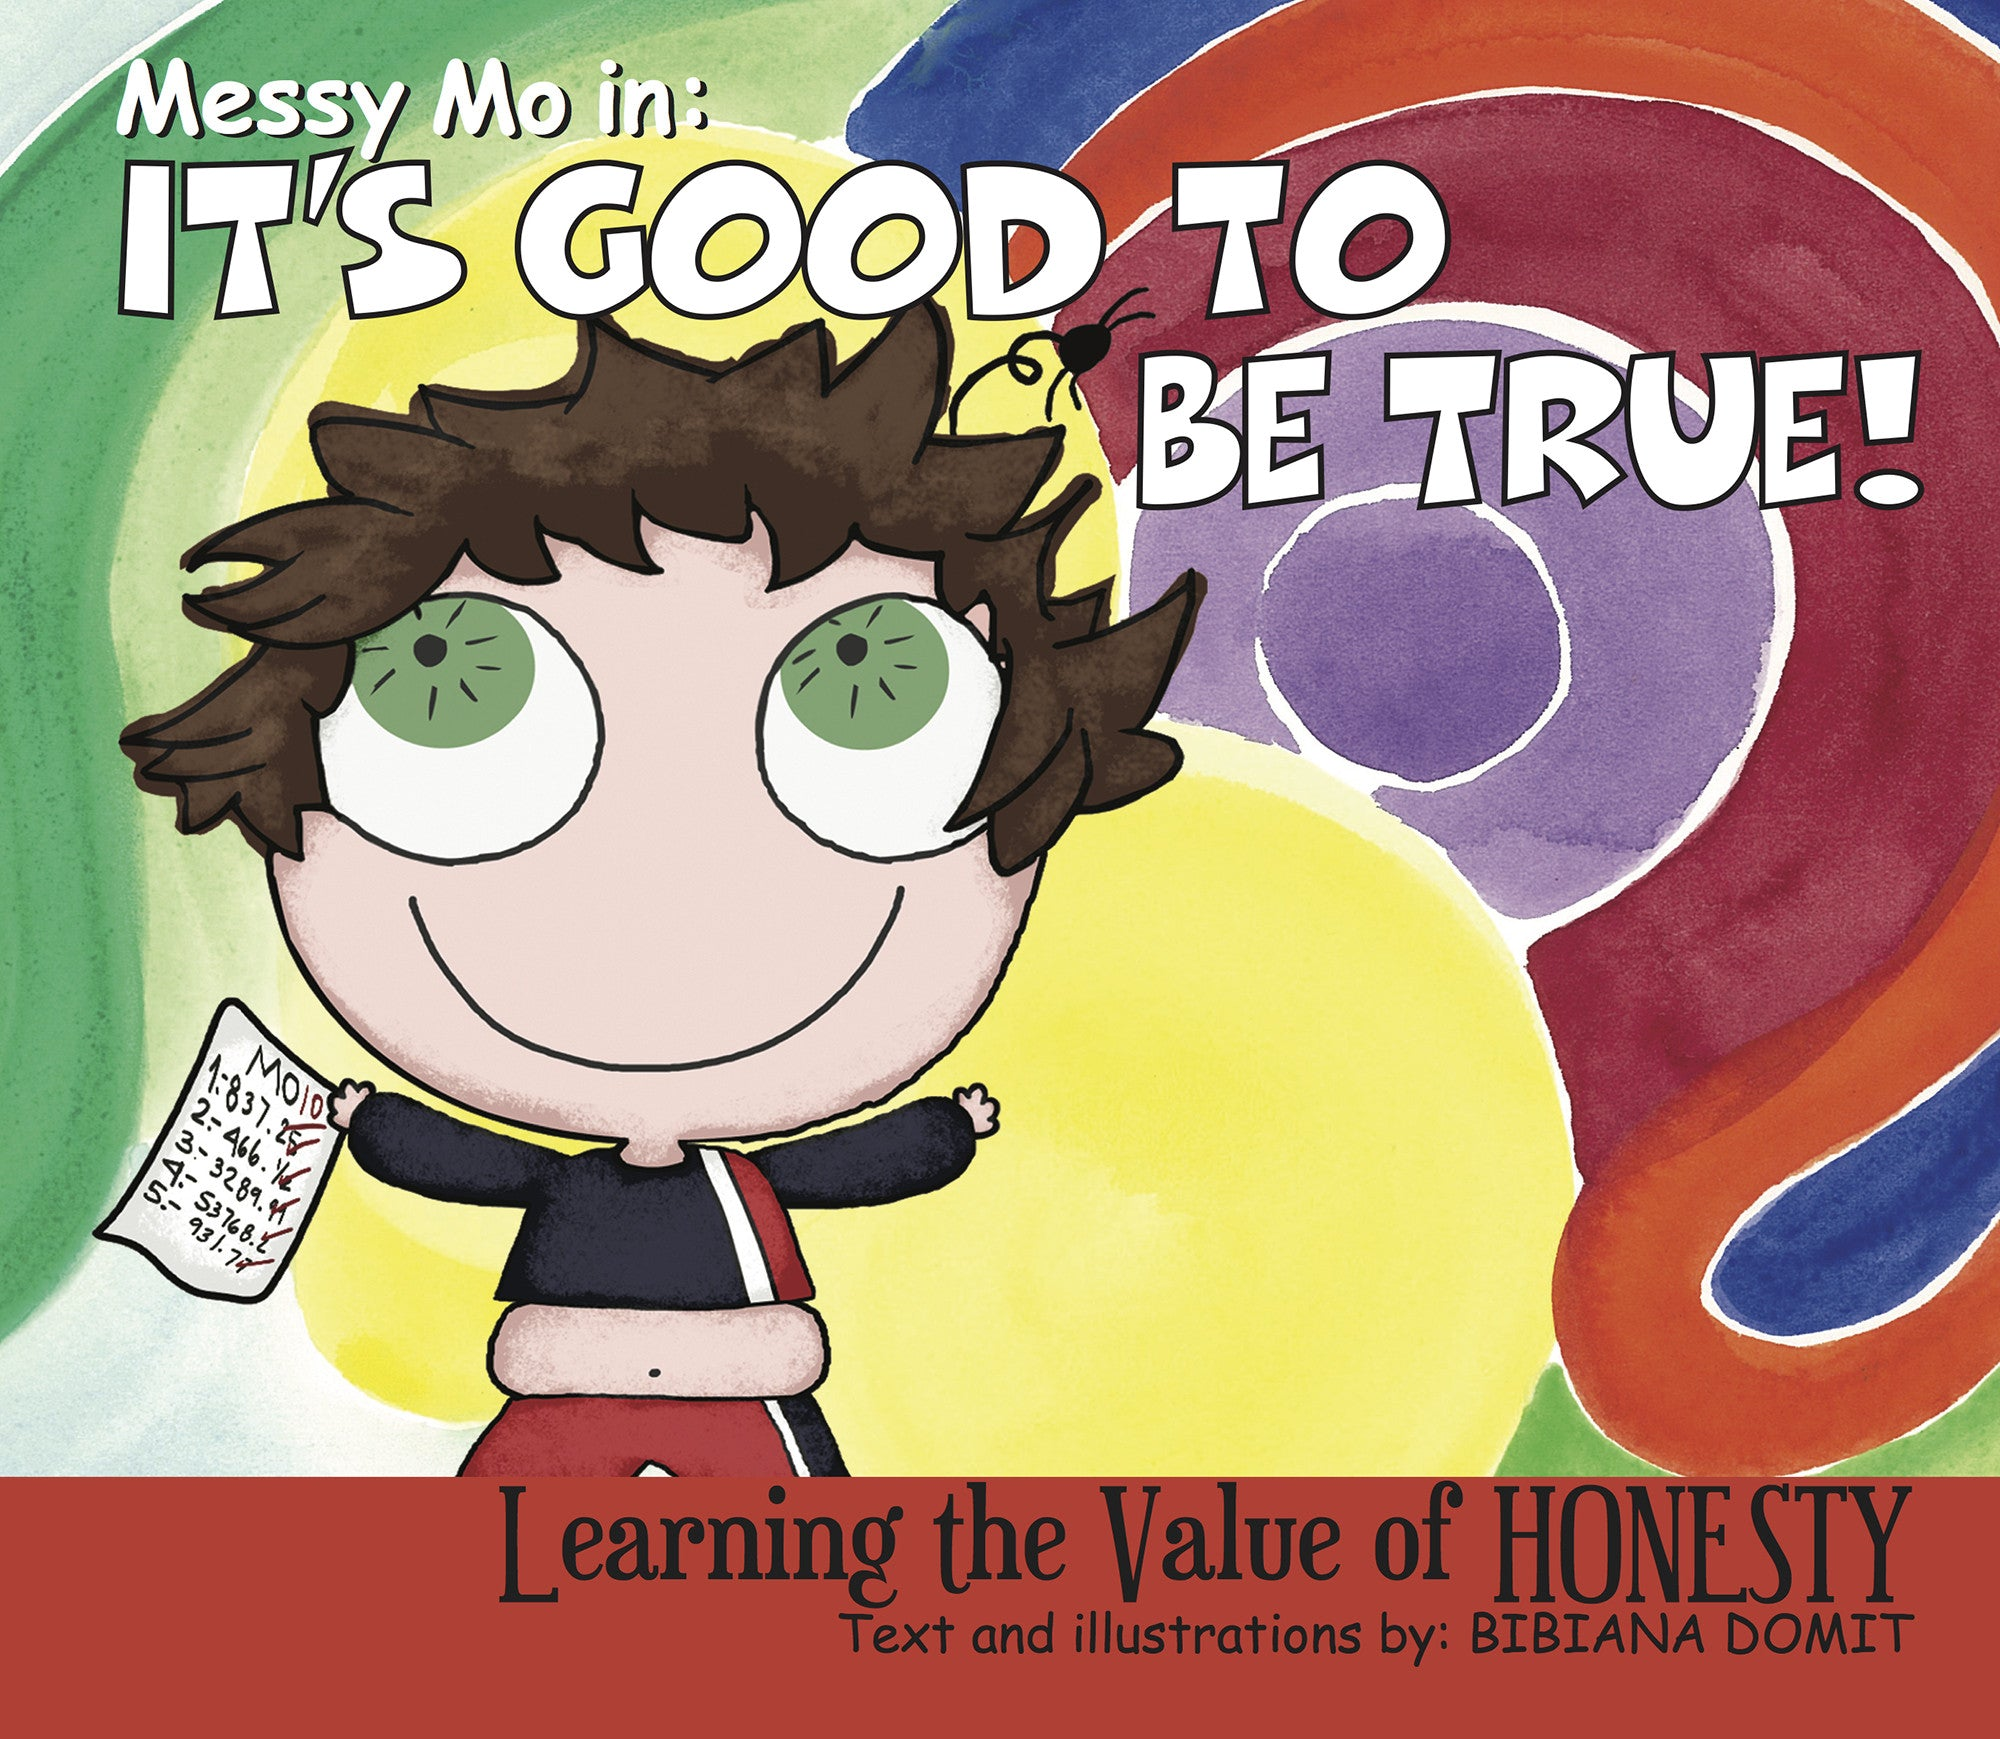 Children's Books about Honesty| Messy Mo in: It's Good to be True